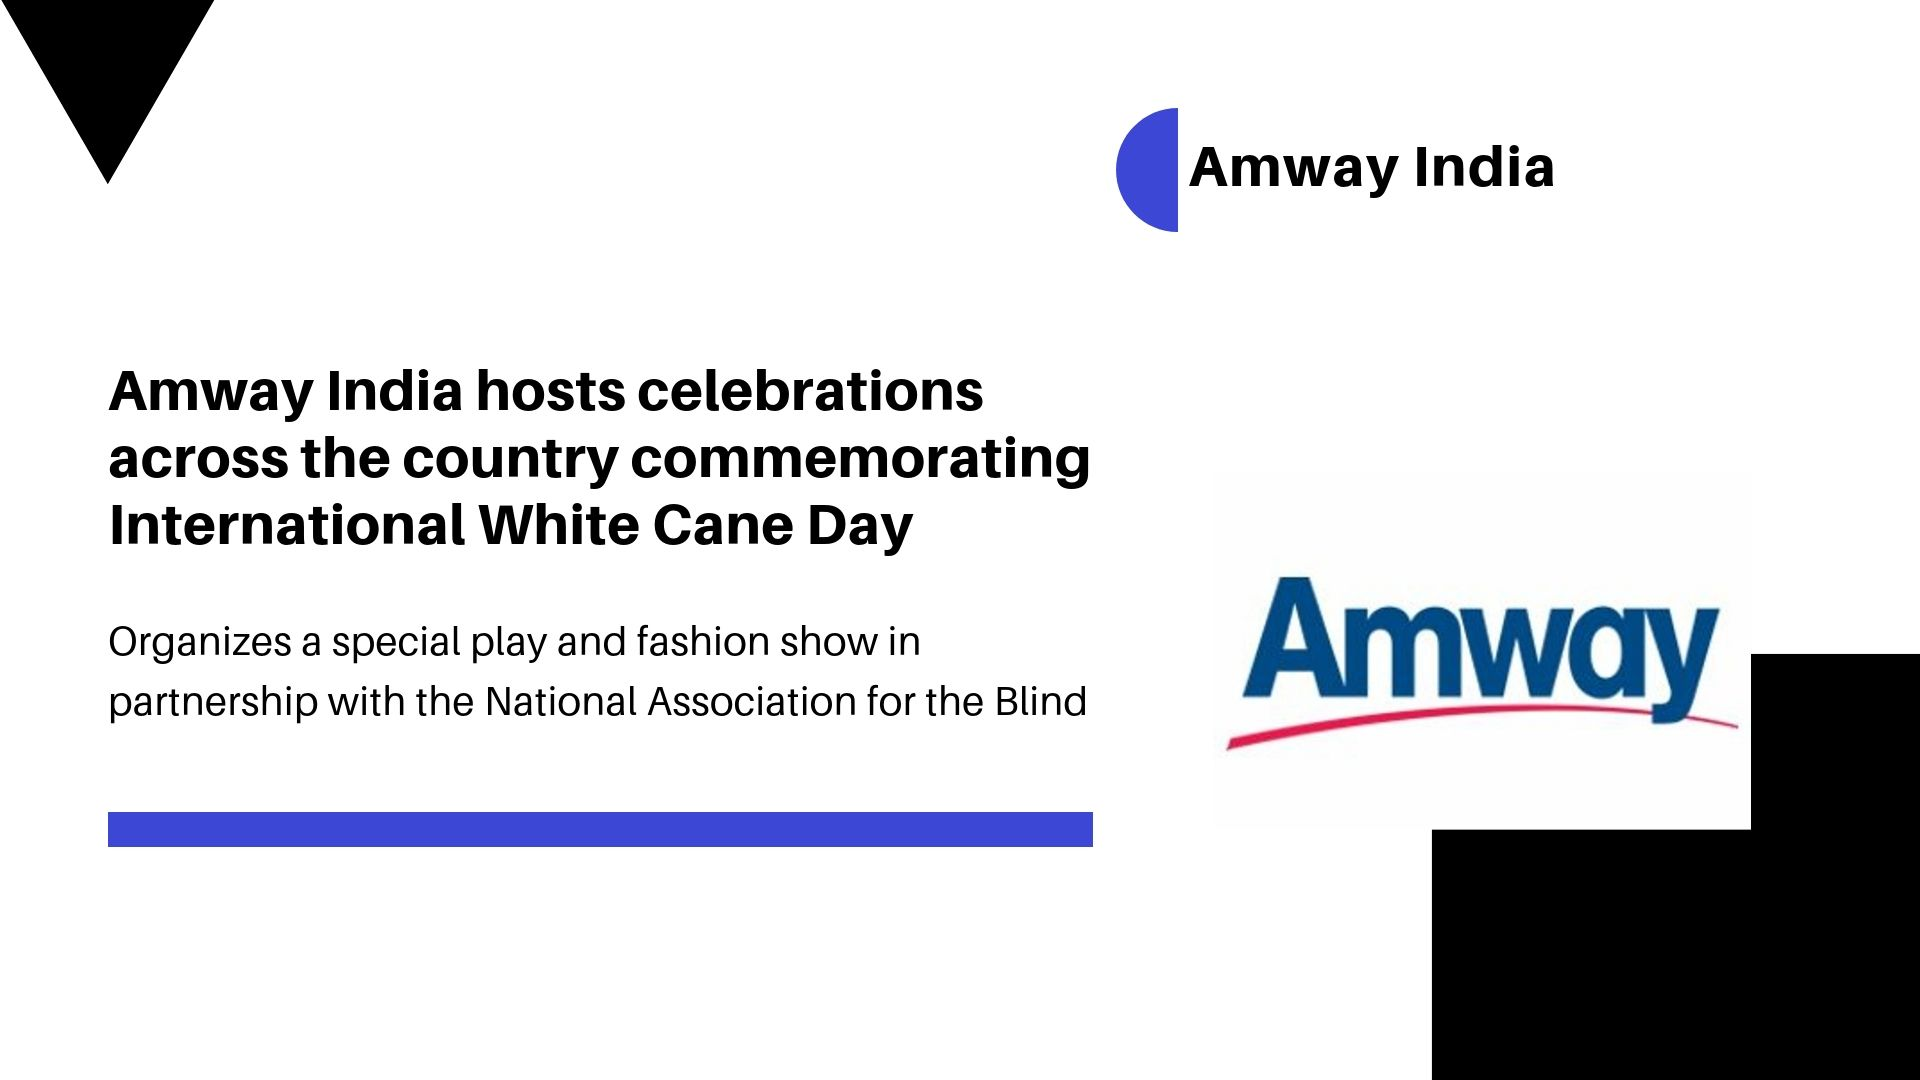 Amway India hosts celebrations across the country commemorating International White Cane Day